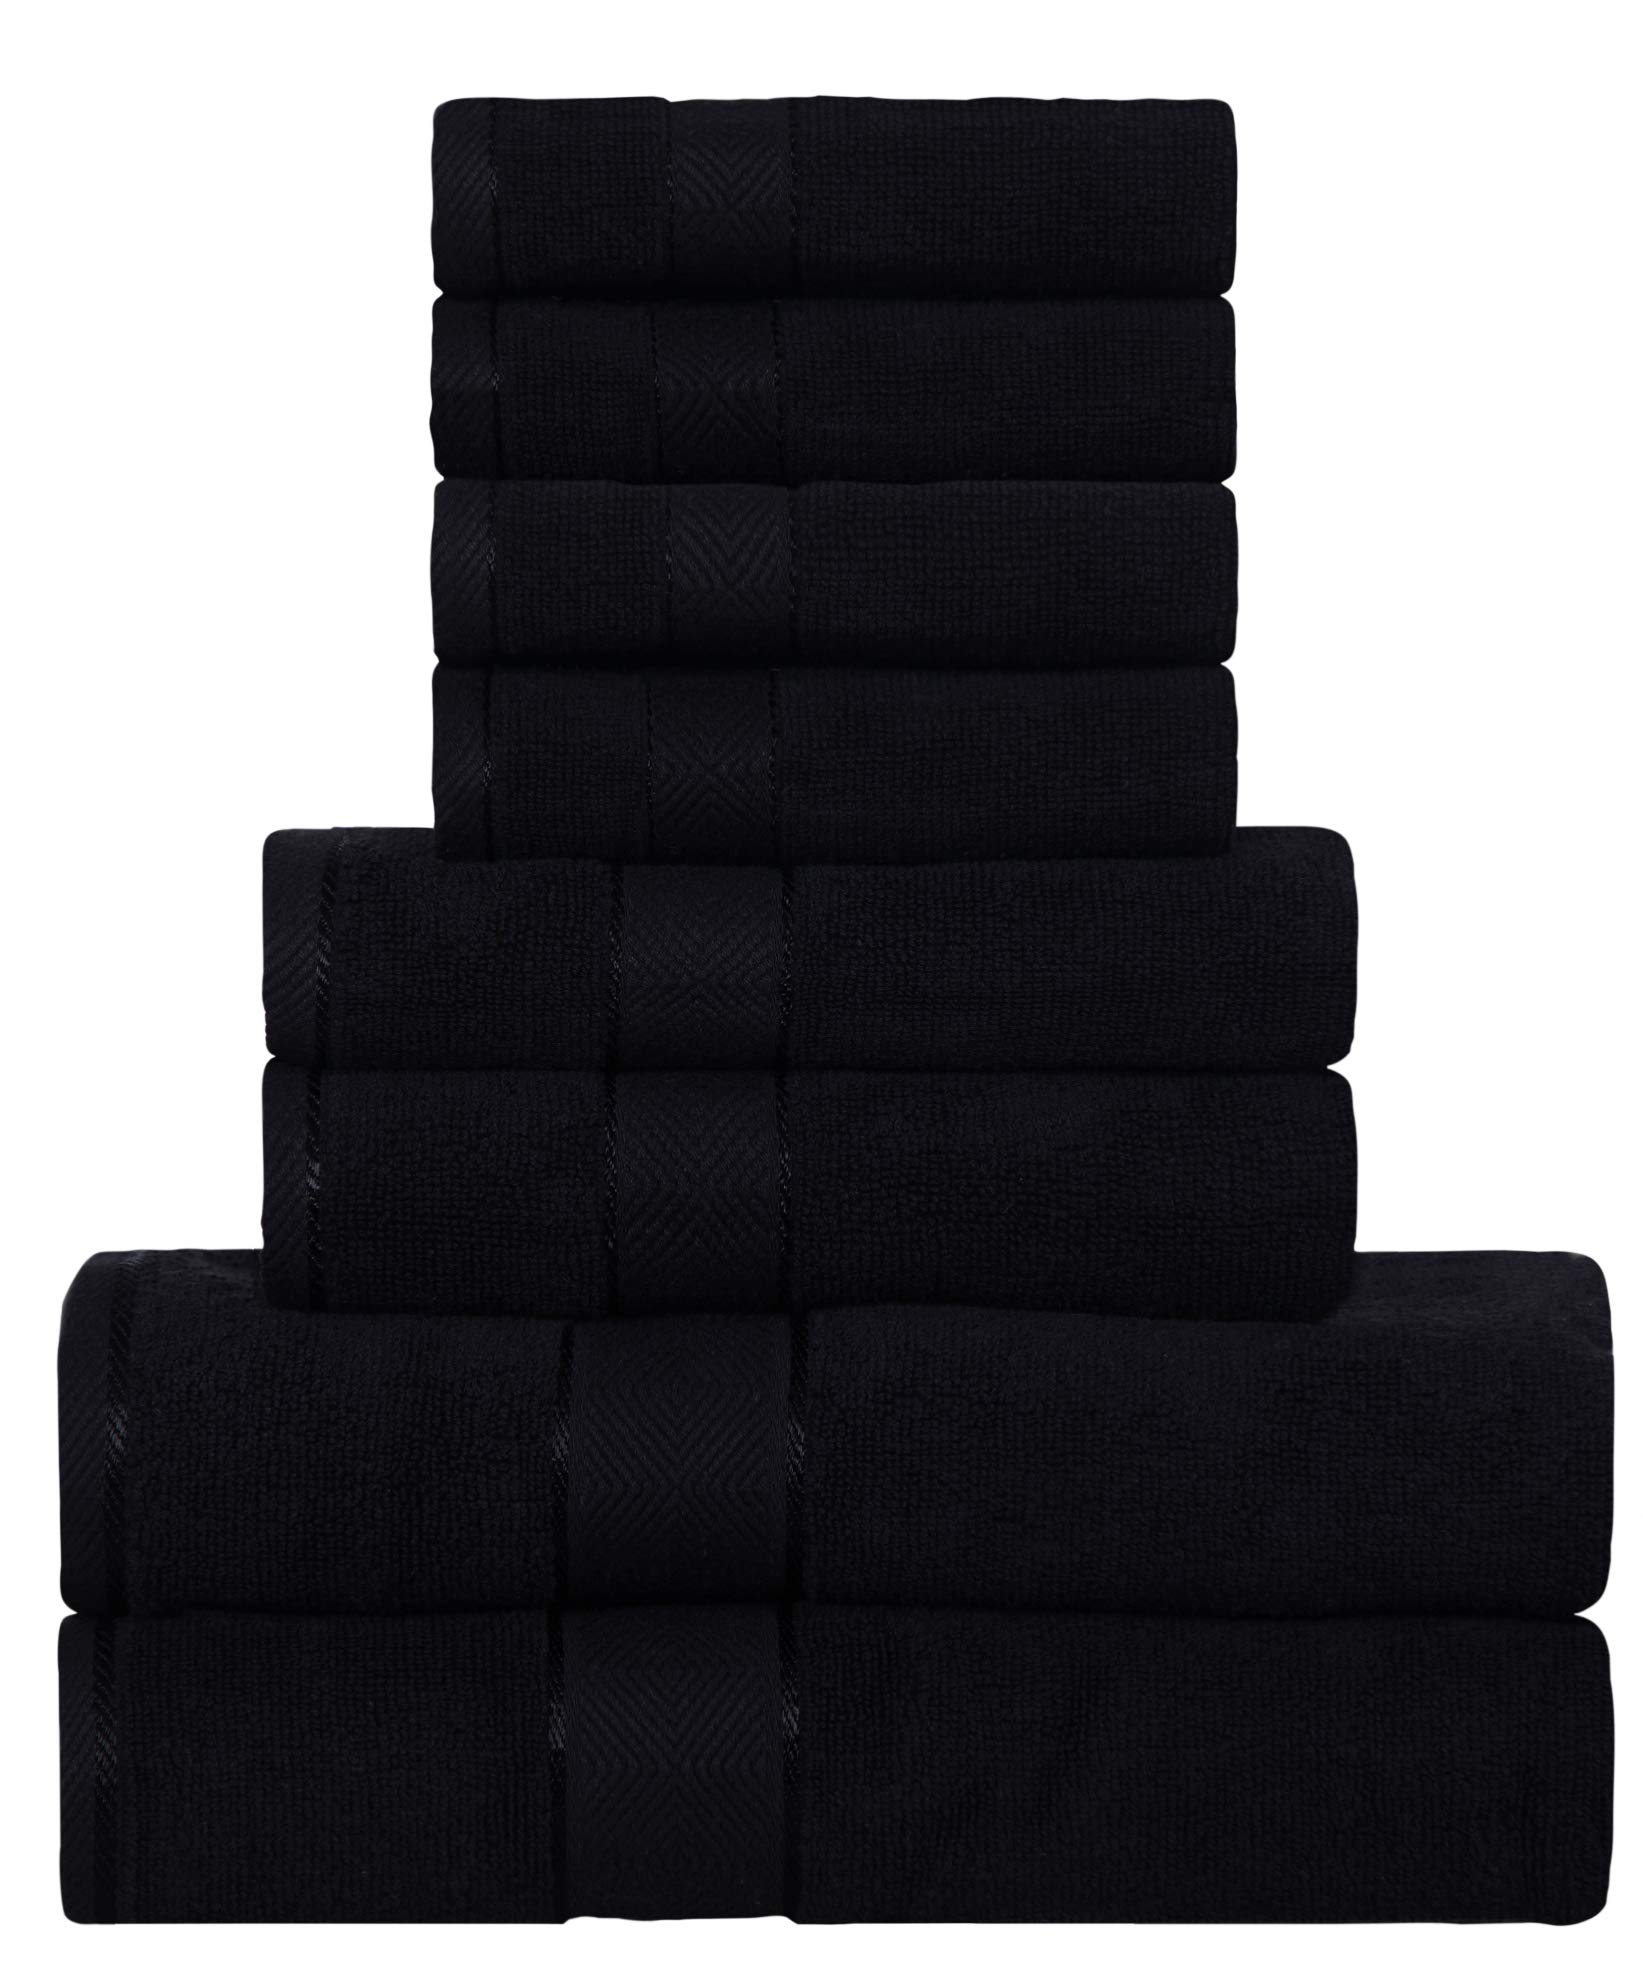 DIVINE Elysian - Premium ,100% Natural Ring-Spun finest quality double ply cotton yarn,Soft,Extra Absorbent & Durable, Quick-dry 8 Pc Towel Set (2 Bath Towels,2 Hand Towels & 4 Washcloths) - Black